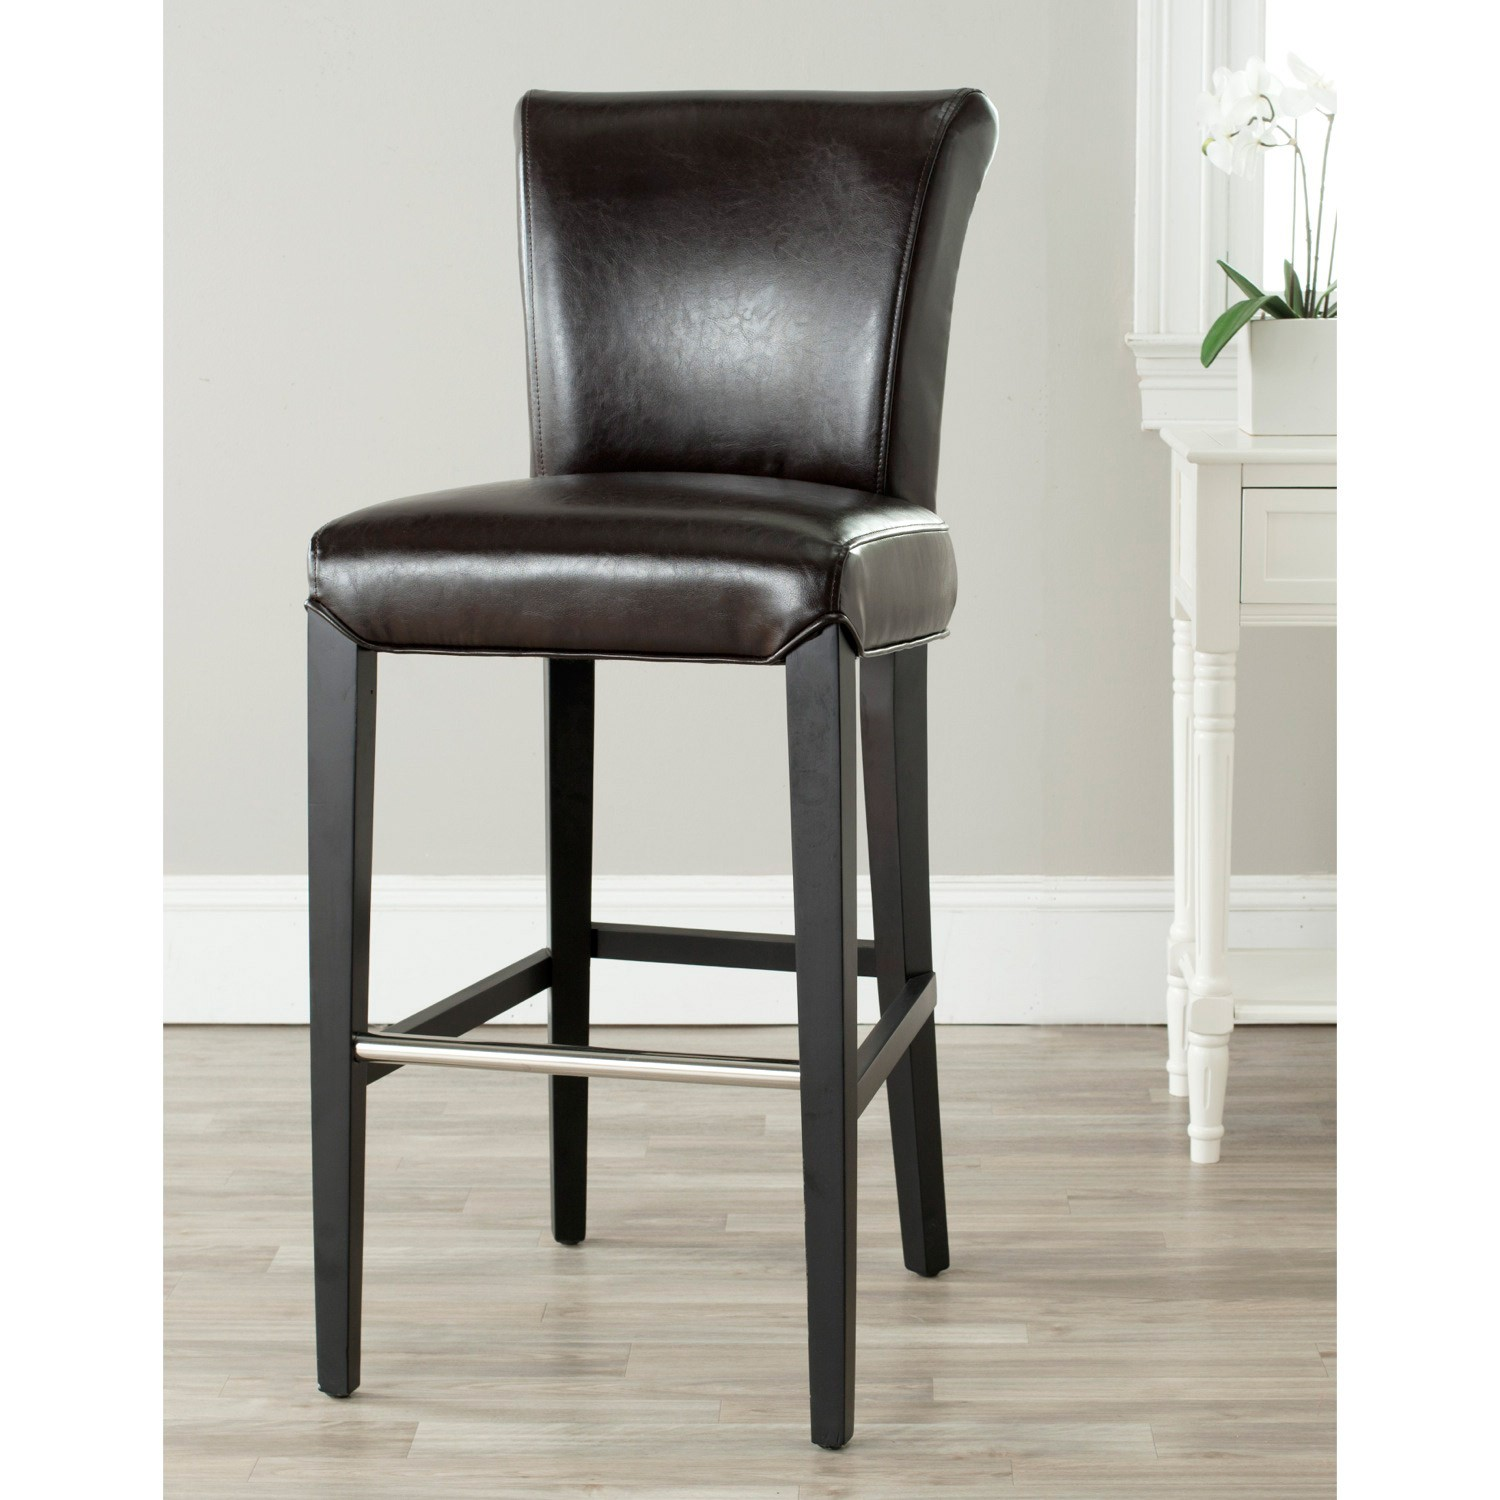 Upholstered Bar Stools With Backs Homesfeed